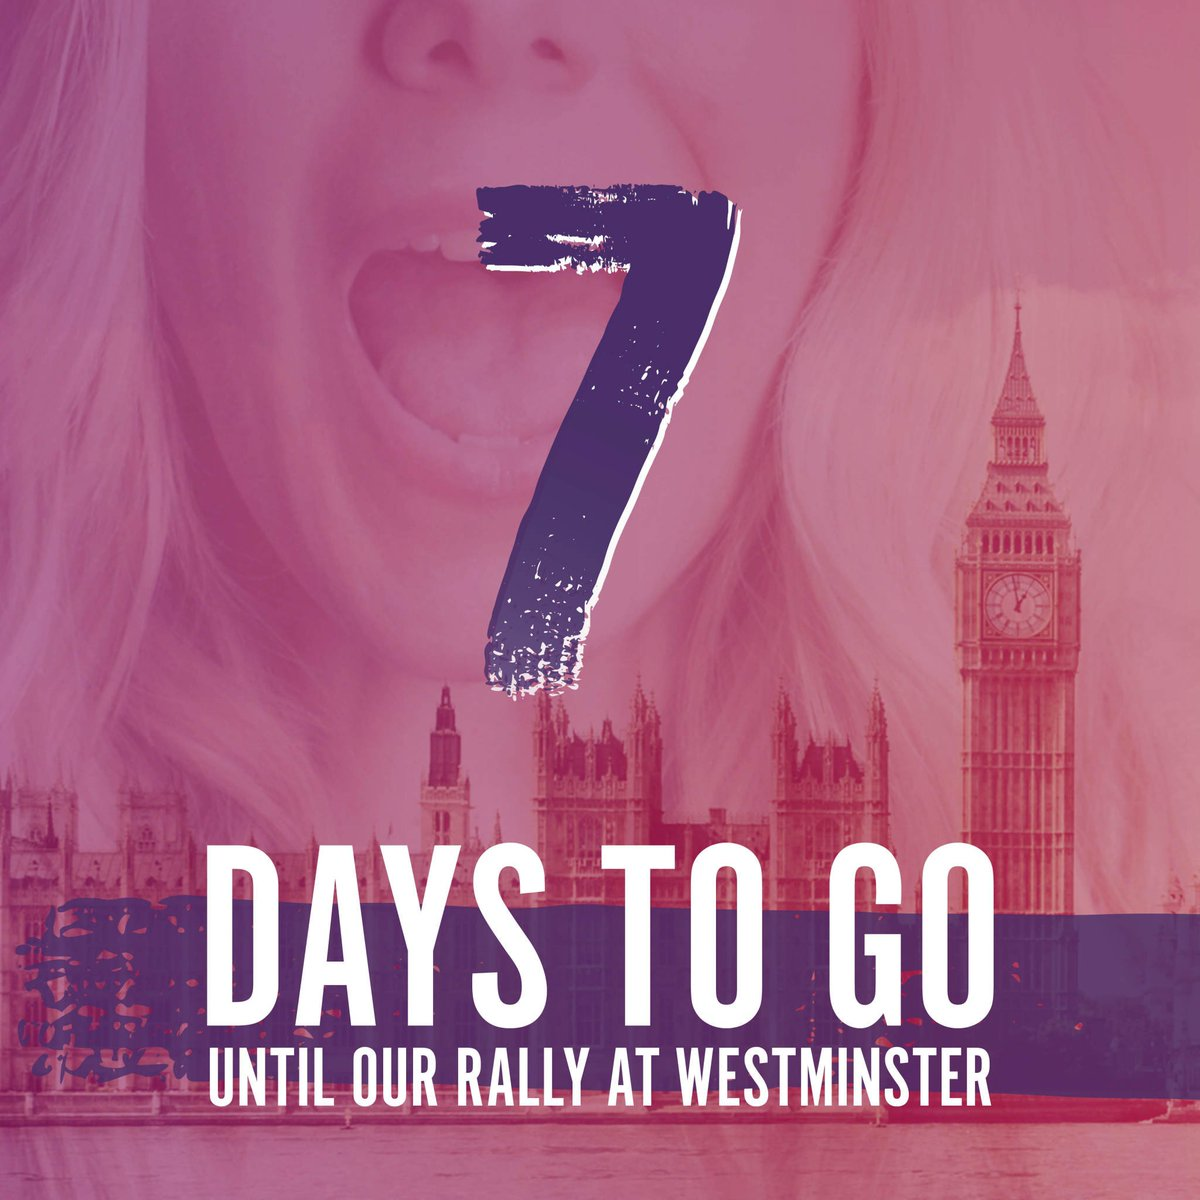 The countdown begins! 7 days to go until our Westminster rally for #FertilityFairness. We only need 22,000 signatures. Share your #Scream4IVF and sign the petition http://bit.ly/Scream4IVF